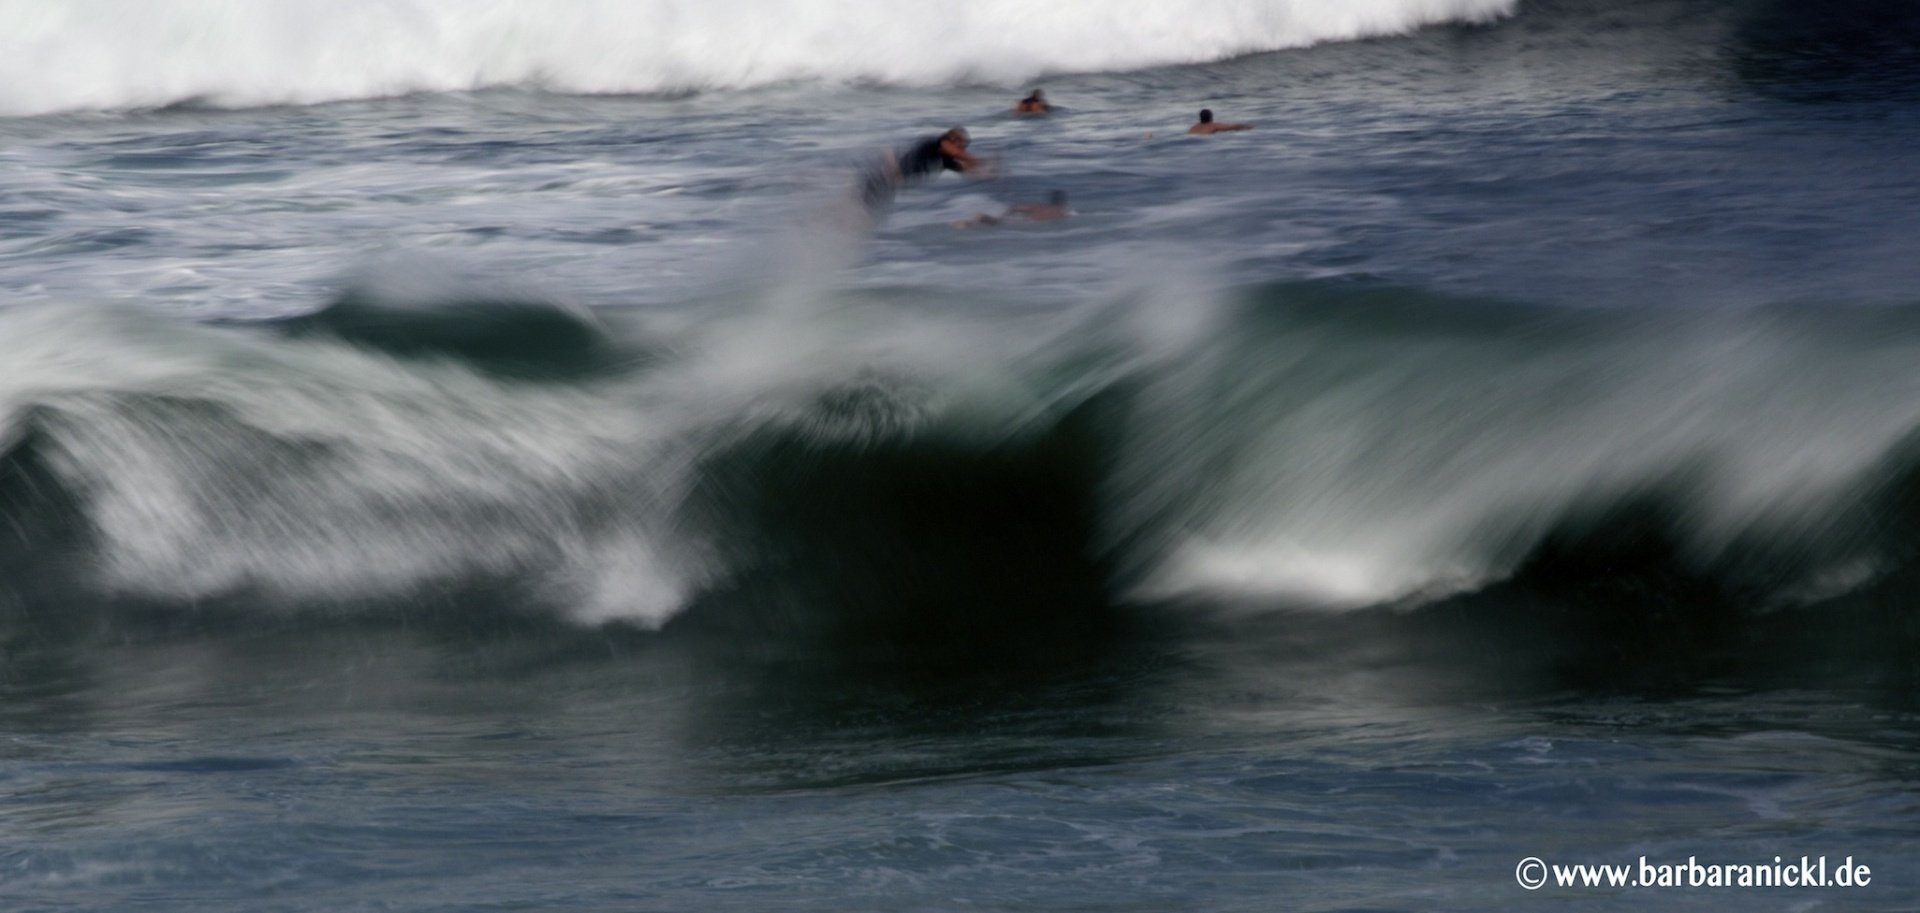 bettyanne's photo of Balian